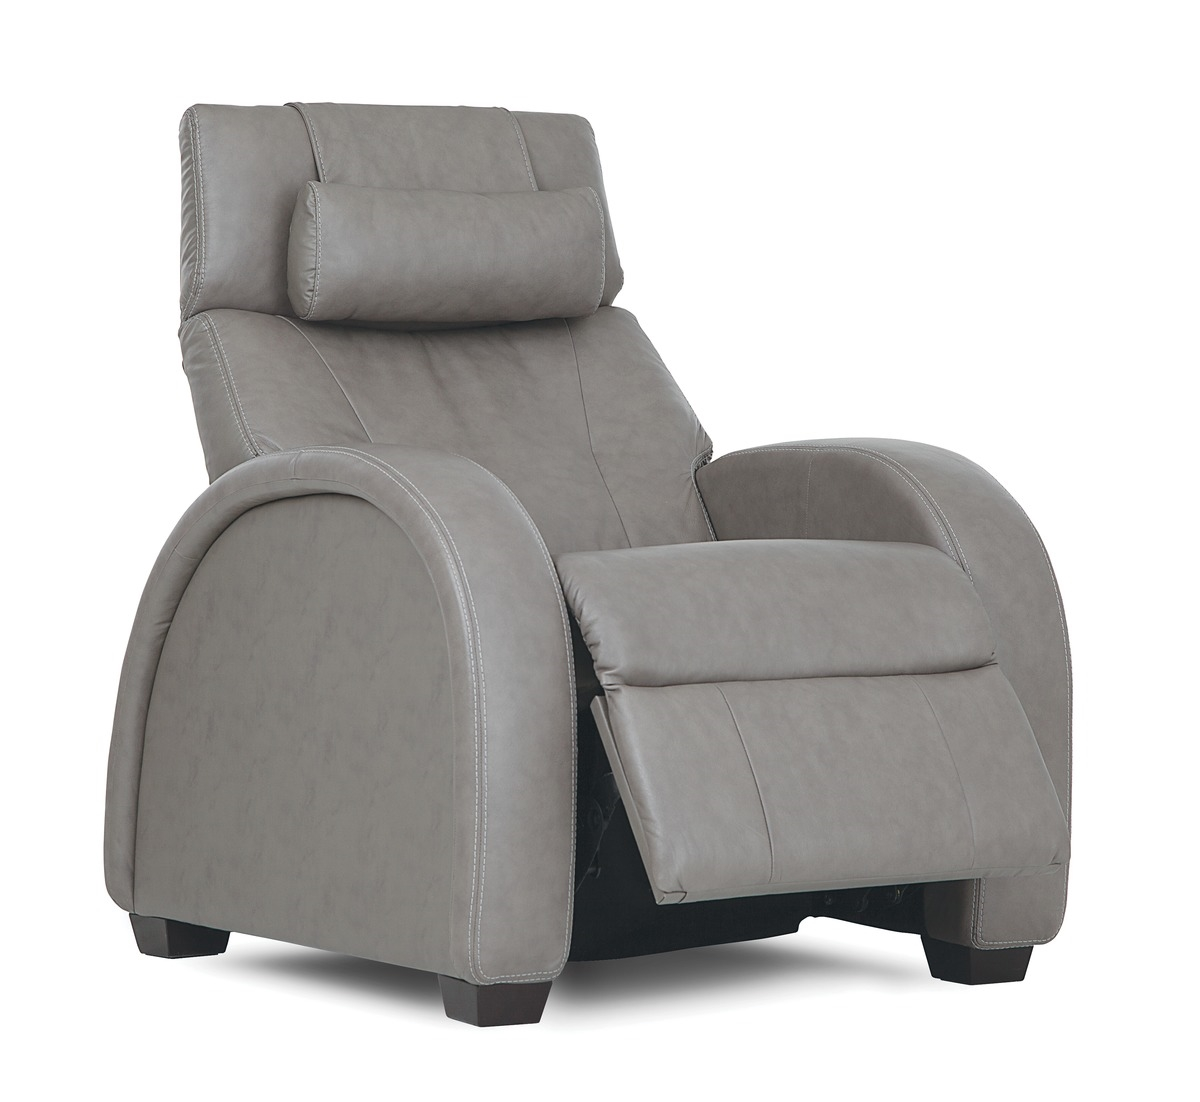 zero gravity recliner with power recline by palliser - Palliser Furniture